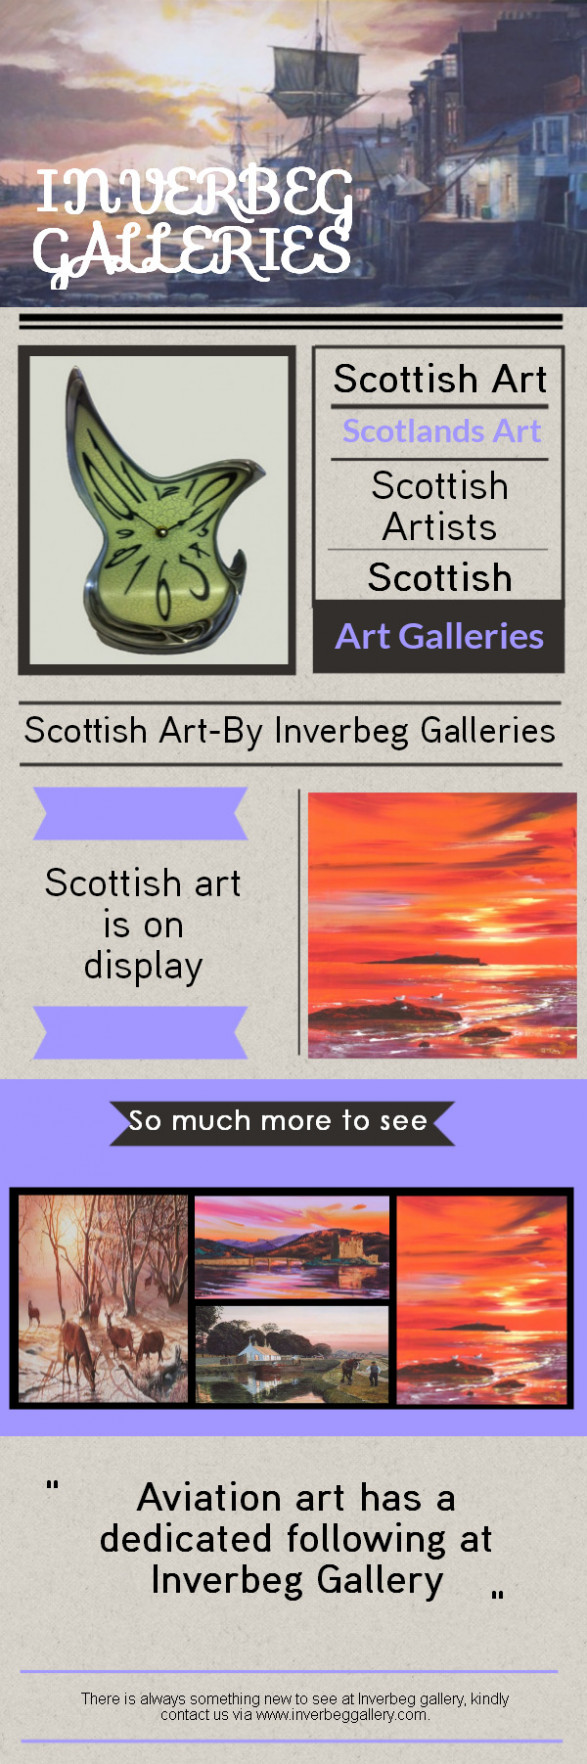 Scottish Art